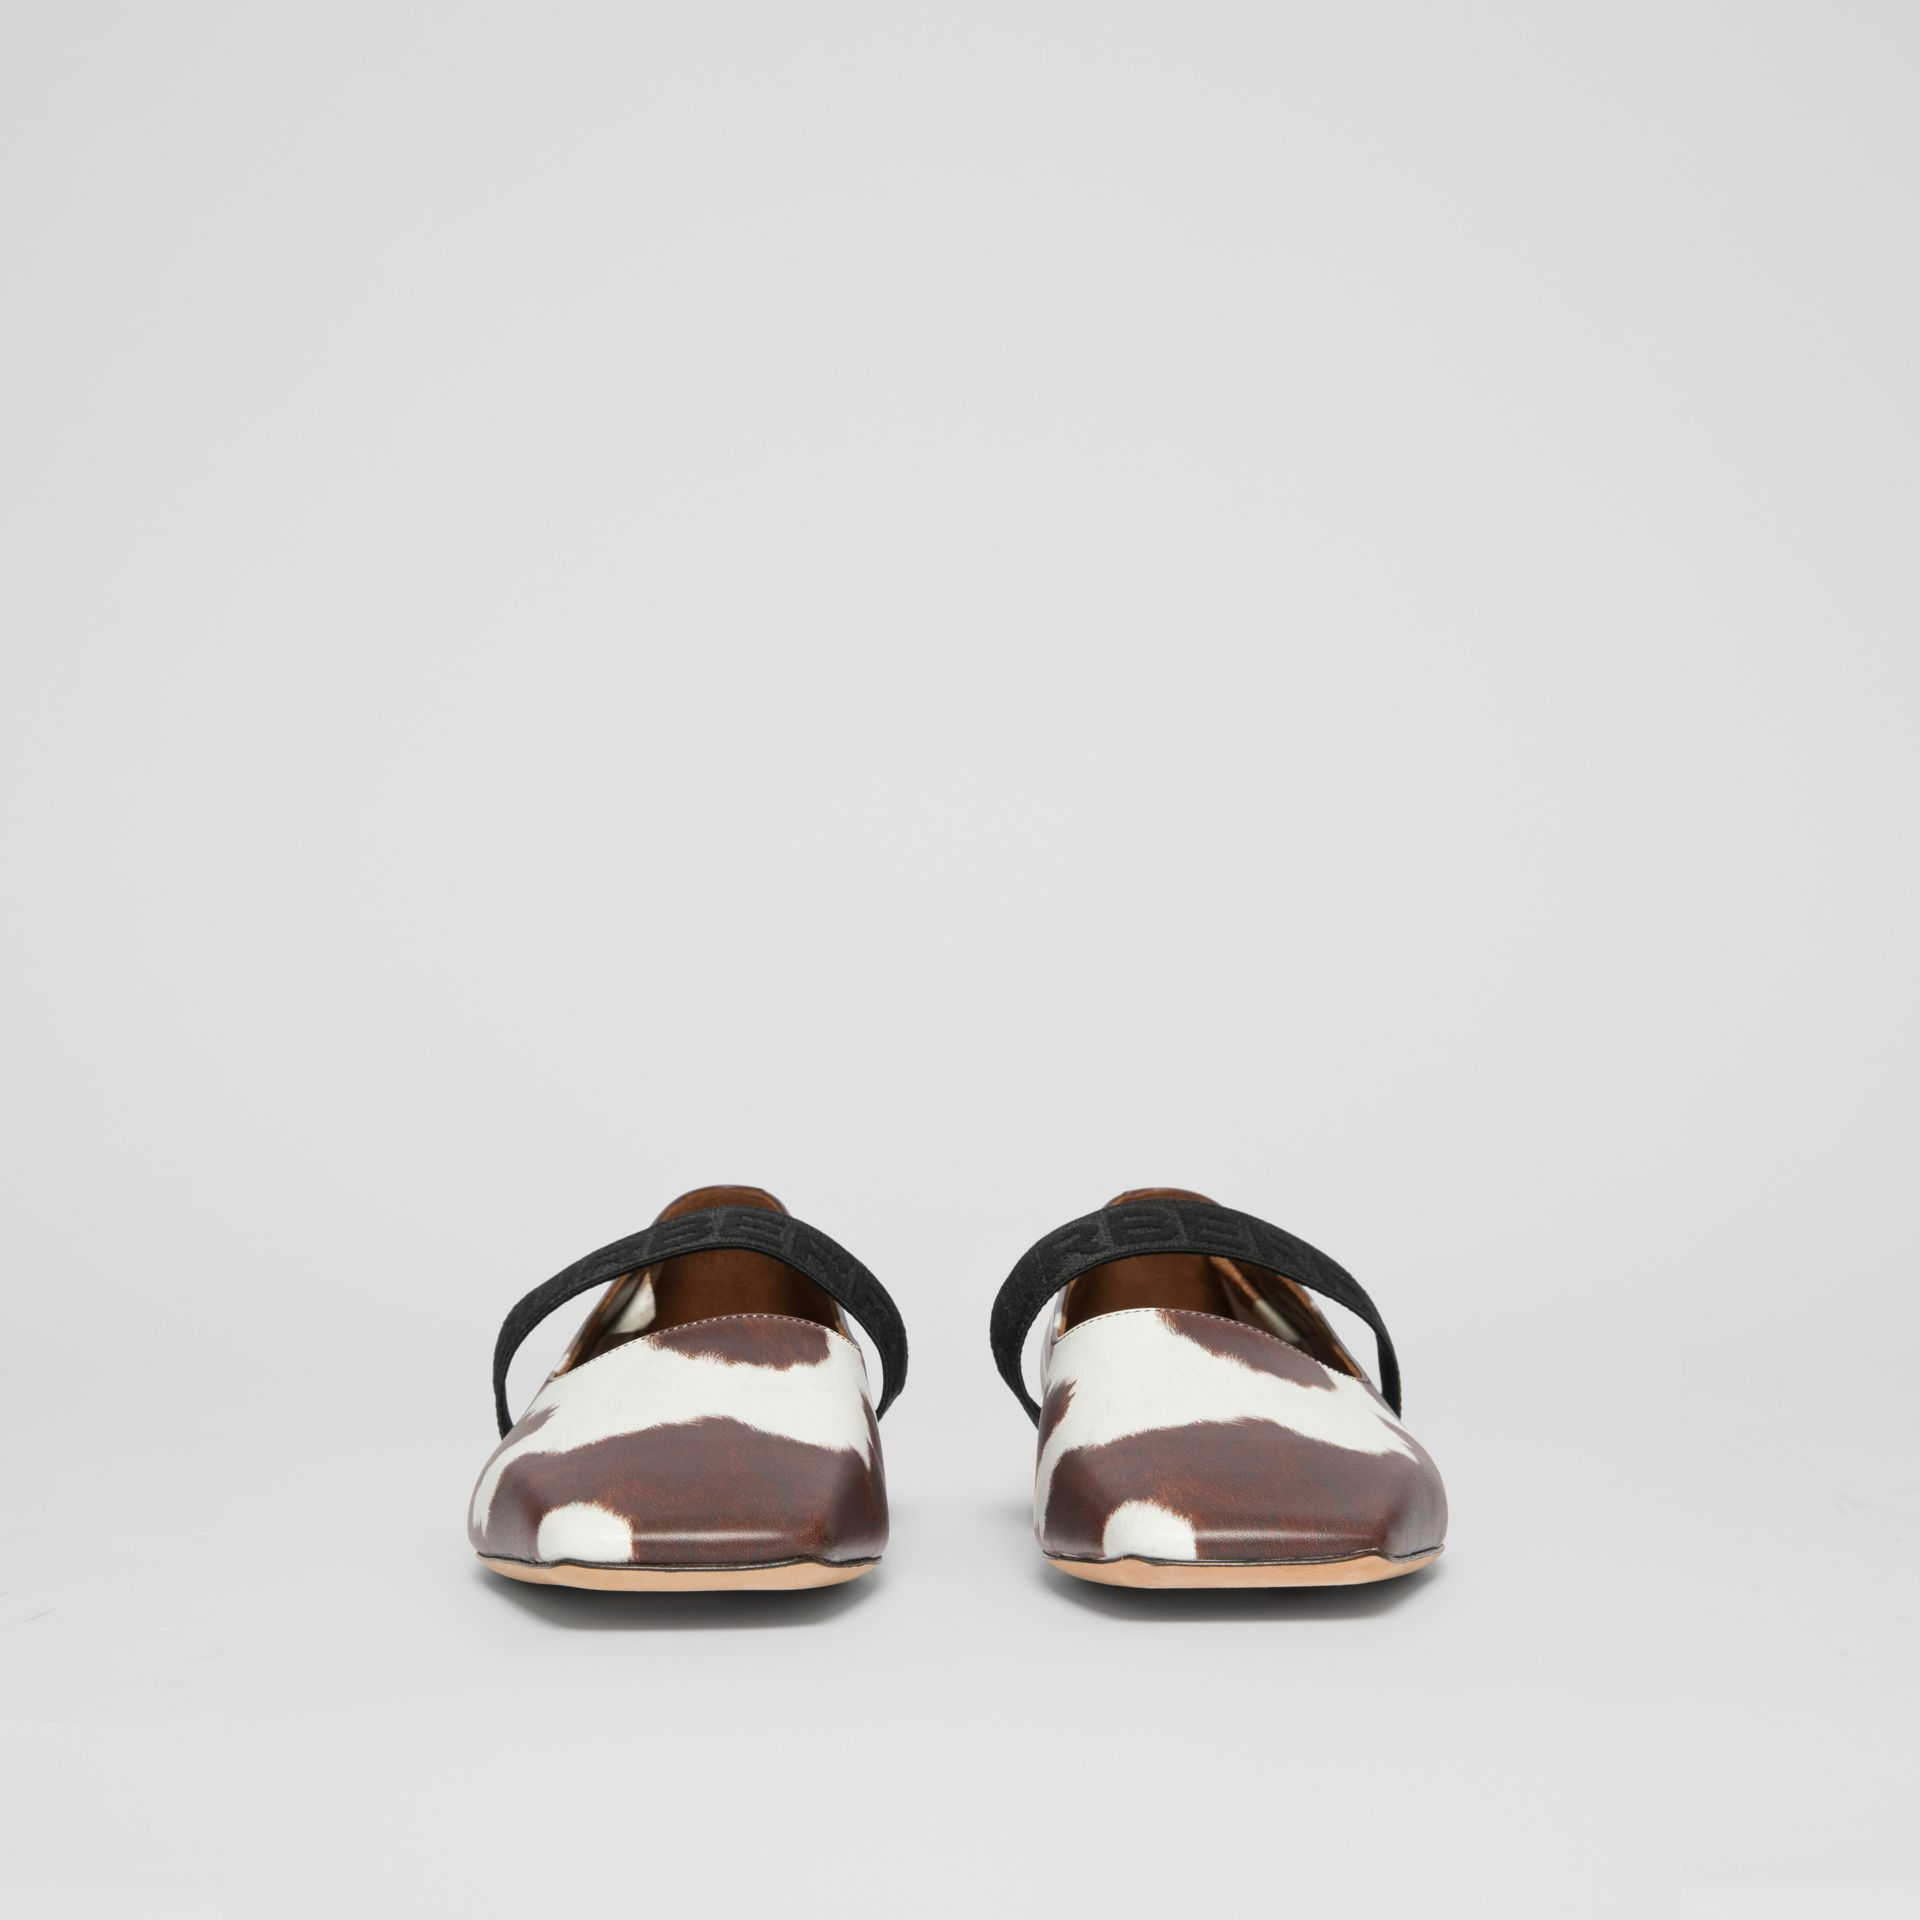 Logo Detail Cow Print Leather Flats - Women | Burberry - gallery image 3